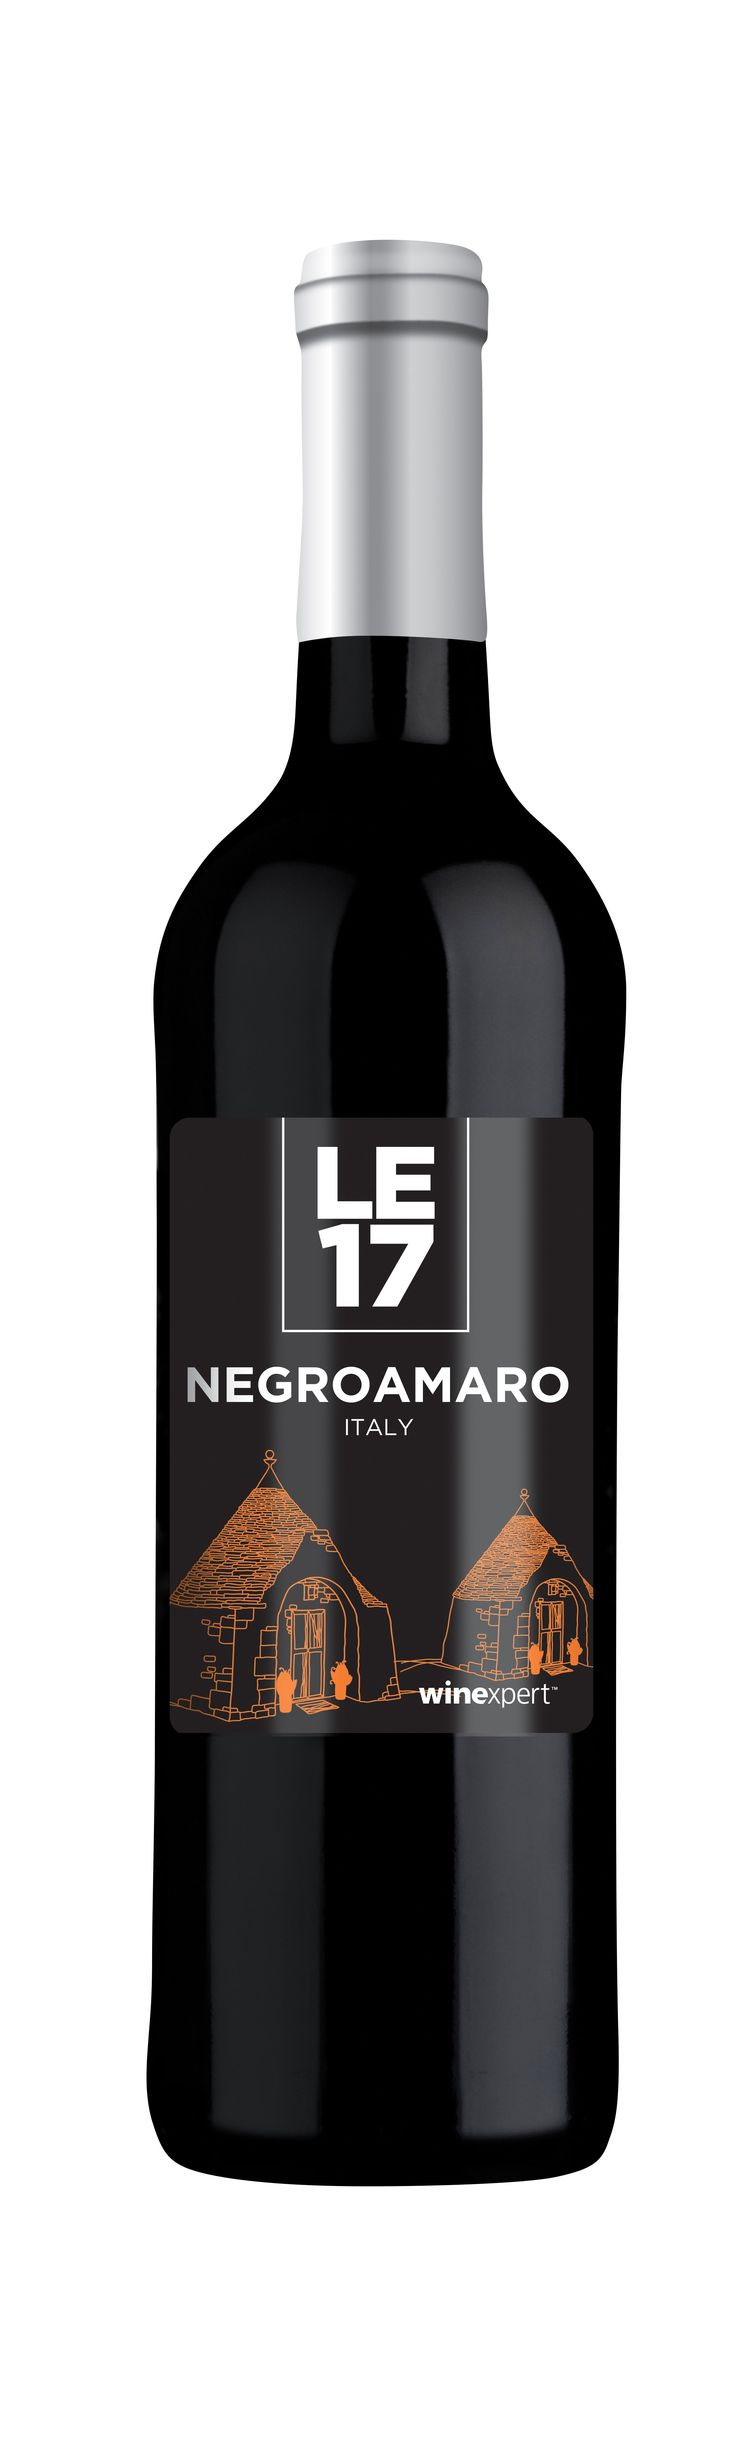 Look at this LE17 Negroamaro *...! Available online here http://shop.beyondthegrape.com/products/le17-negroamaro-deposit-only?utm_campaign=social_autopilot&utm_source=pin&utm_medium=pin #homebrewing